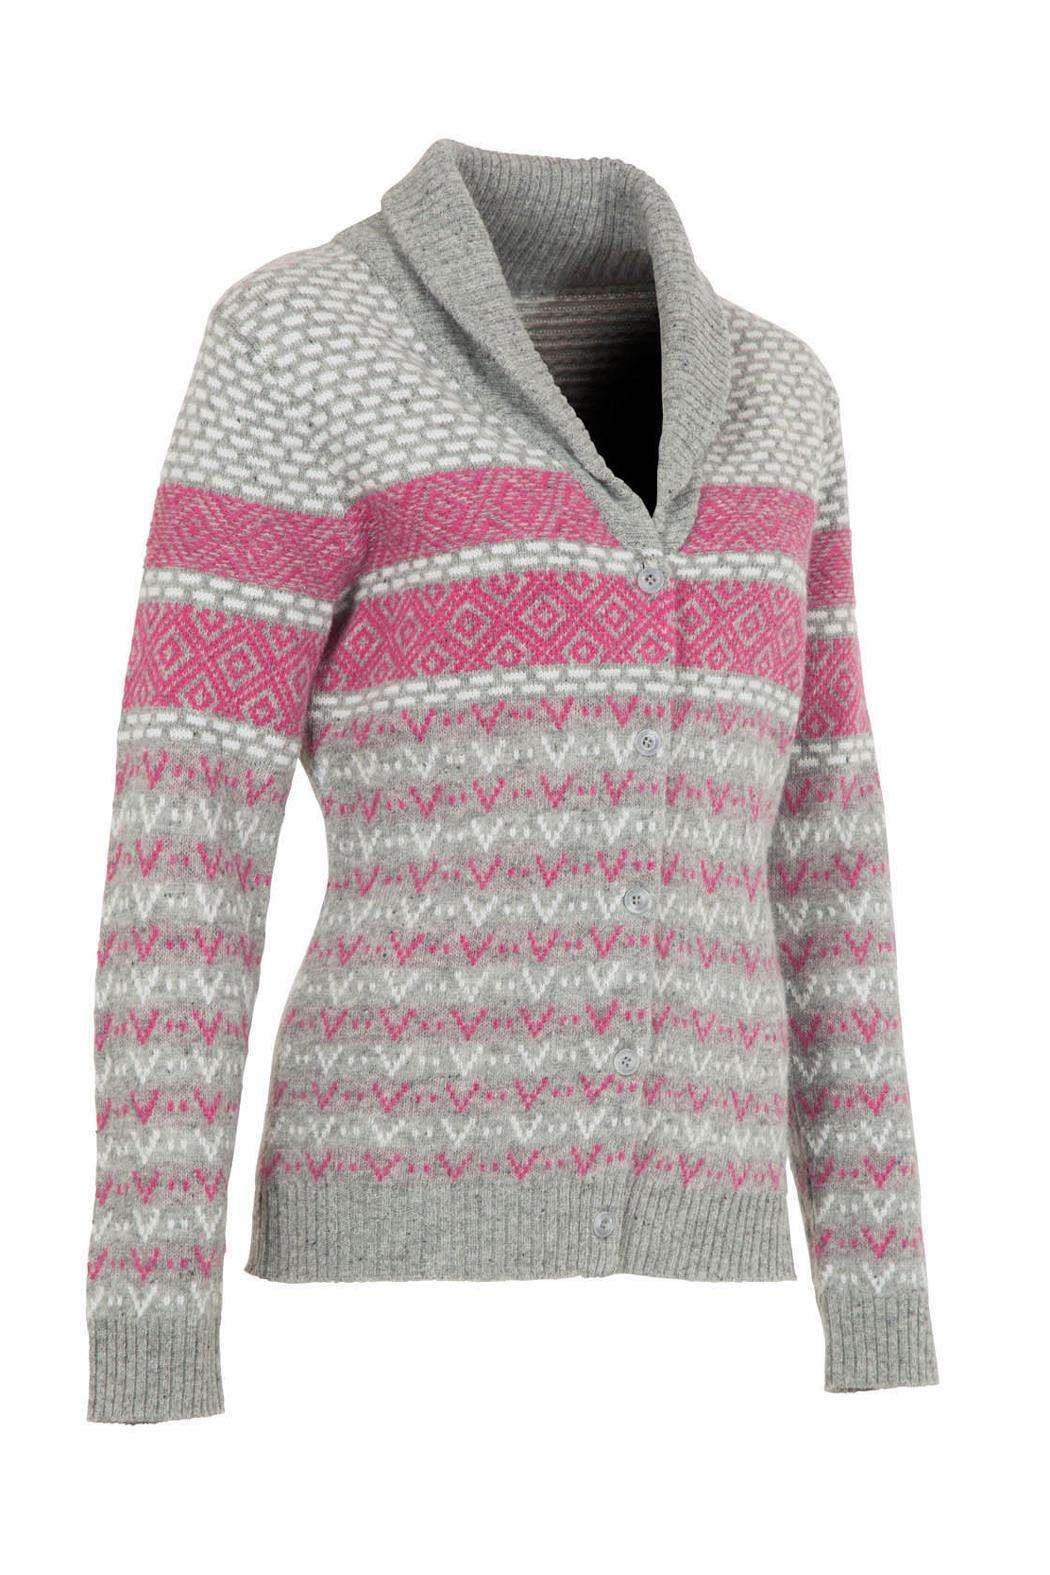 Neve Designs Addison Shawl Cardigan - Main Image